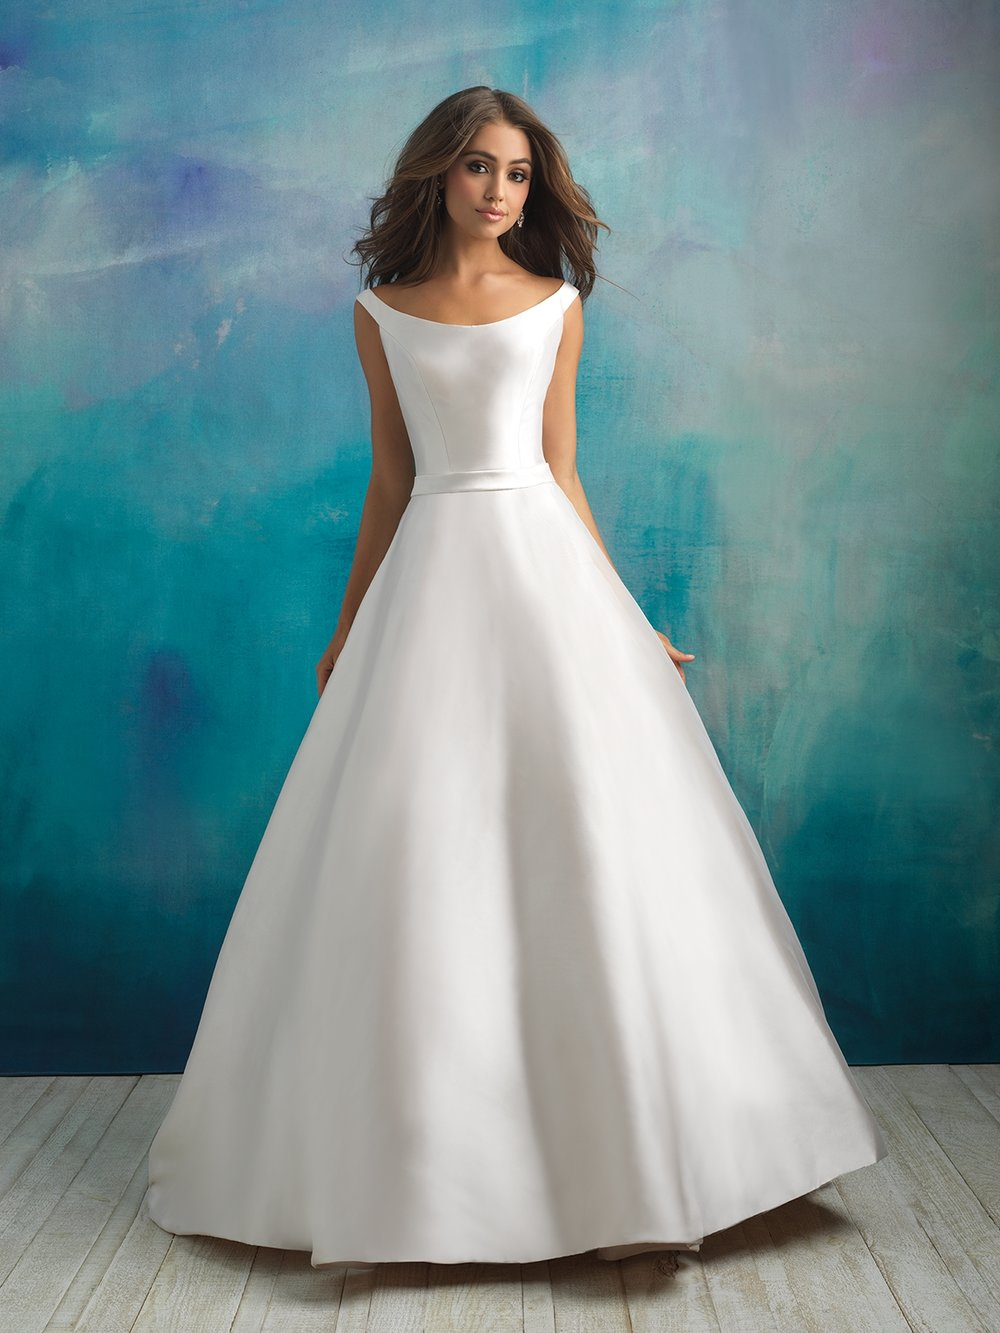 8cc81532fbce8 If you're dreaming of a classically feminine wedding dress, then look no  further! Allure truly delivers with a flattering Mikado silk A-line  silhouette.